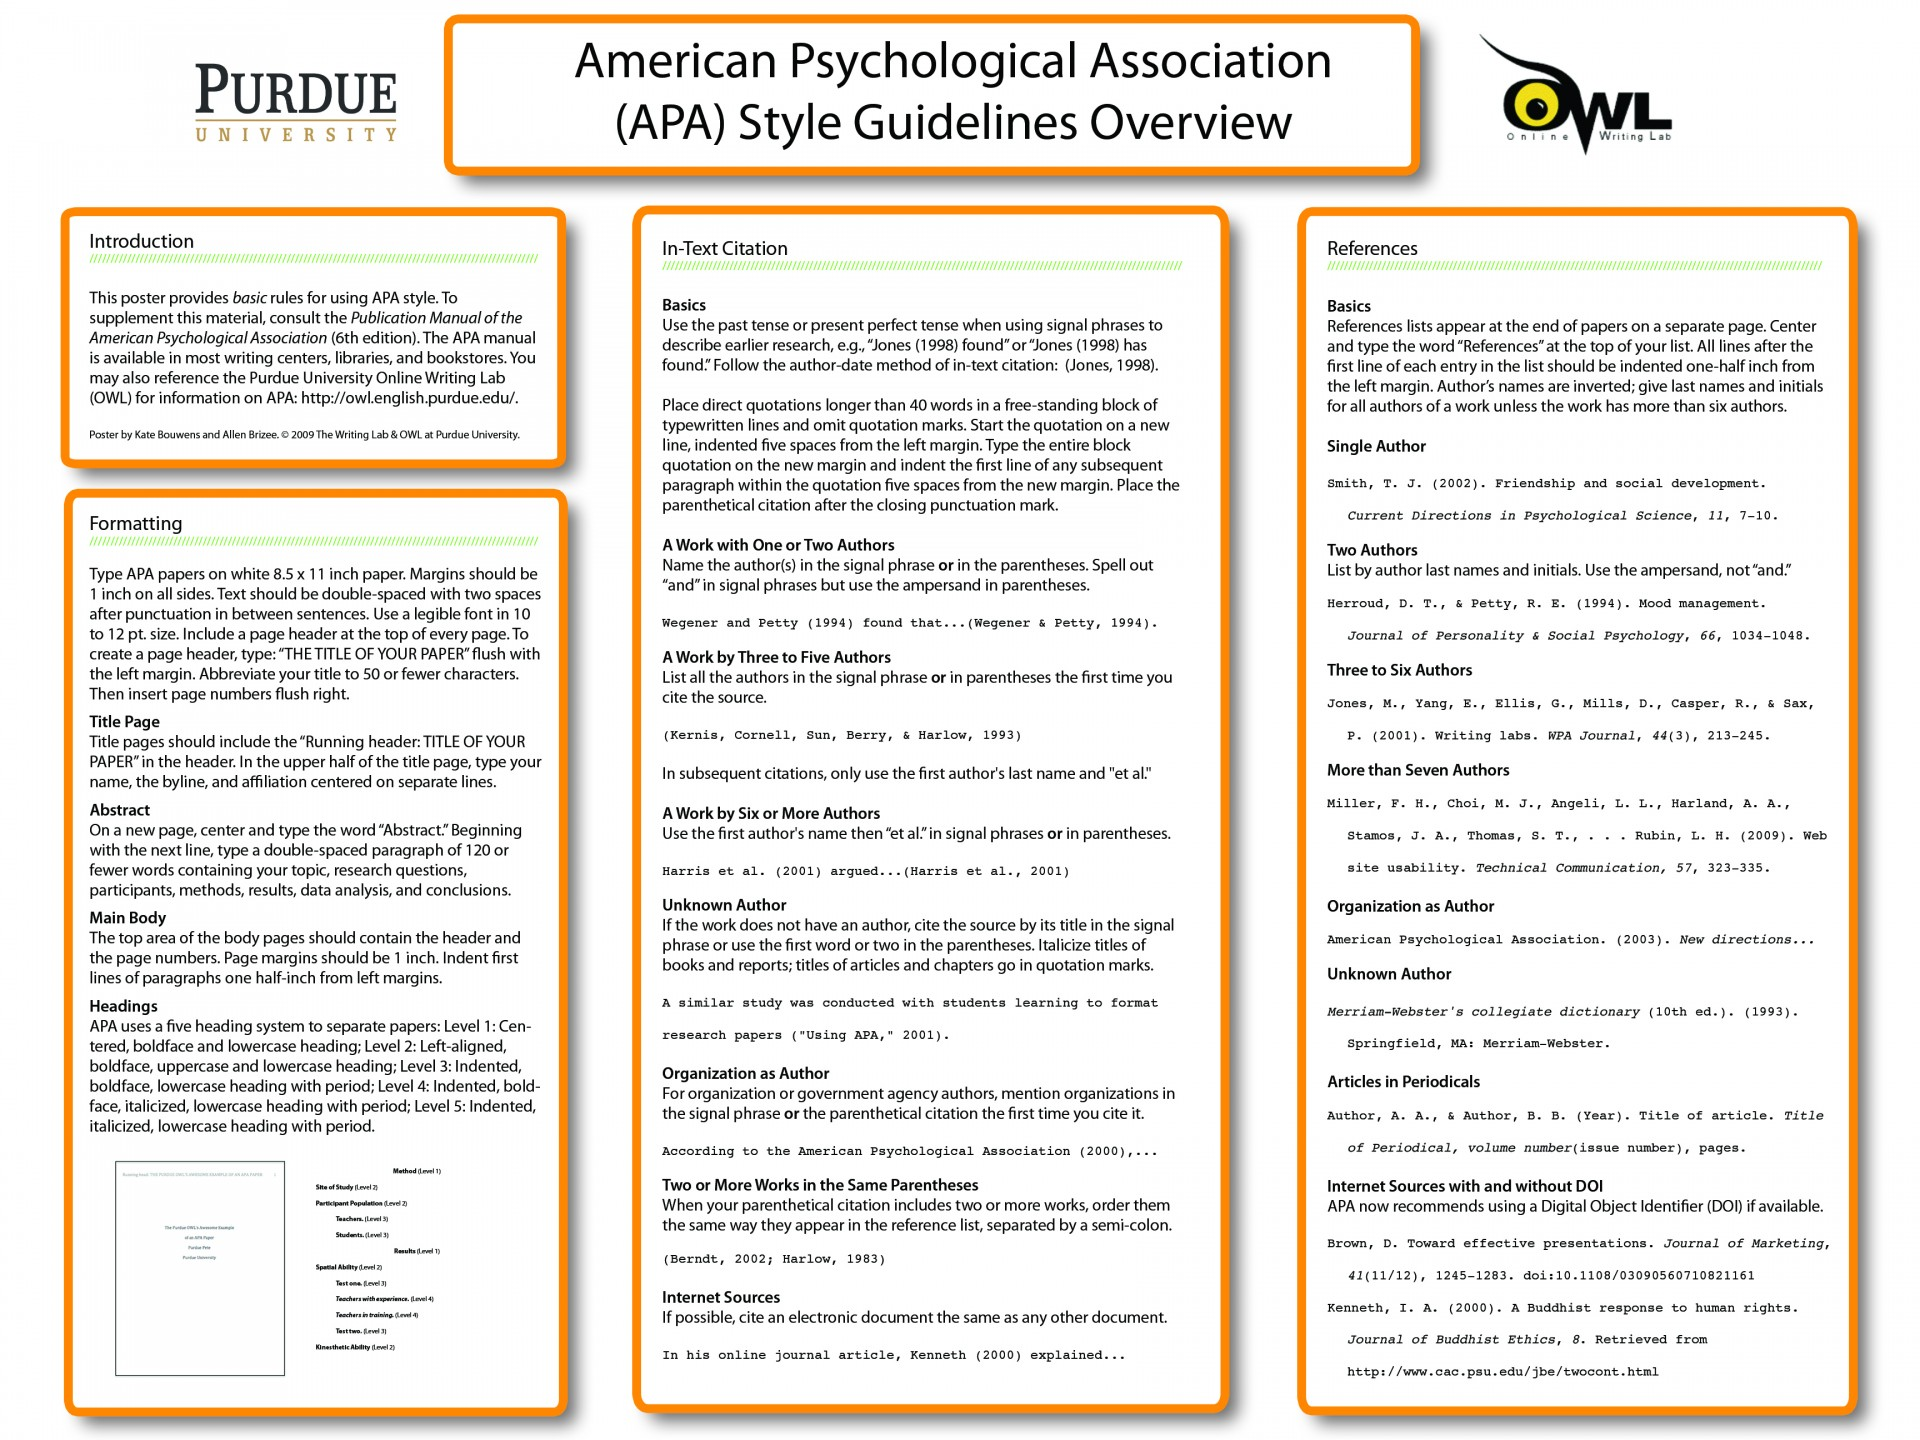 006 Apa Research Paper Citation Awful Example Sample With Website Citations Format 1920